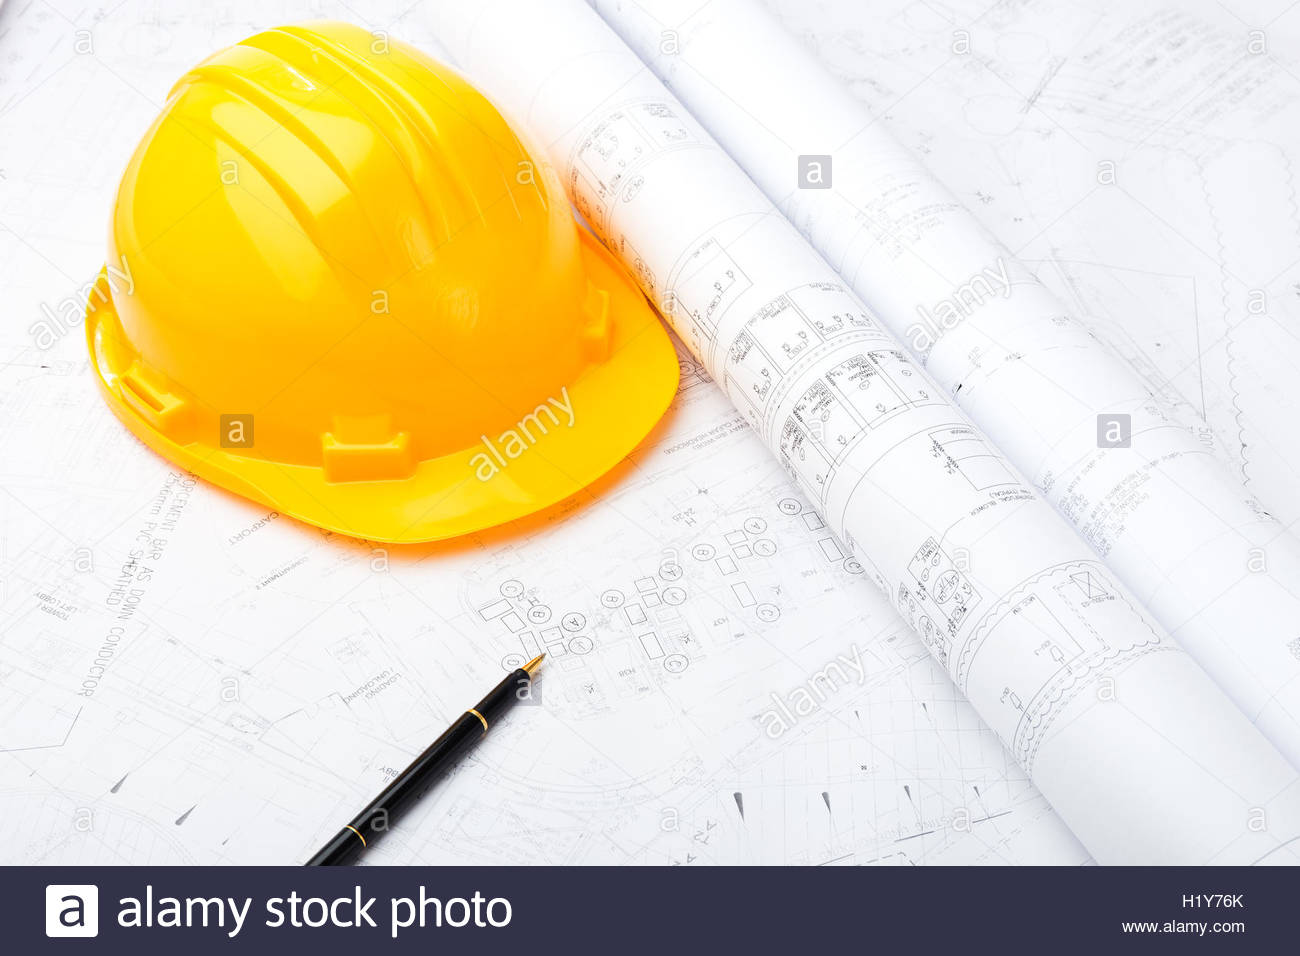 1300x956 Construction Drawing And Safety Helmet Stock Photo 121685611